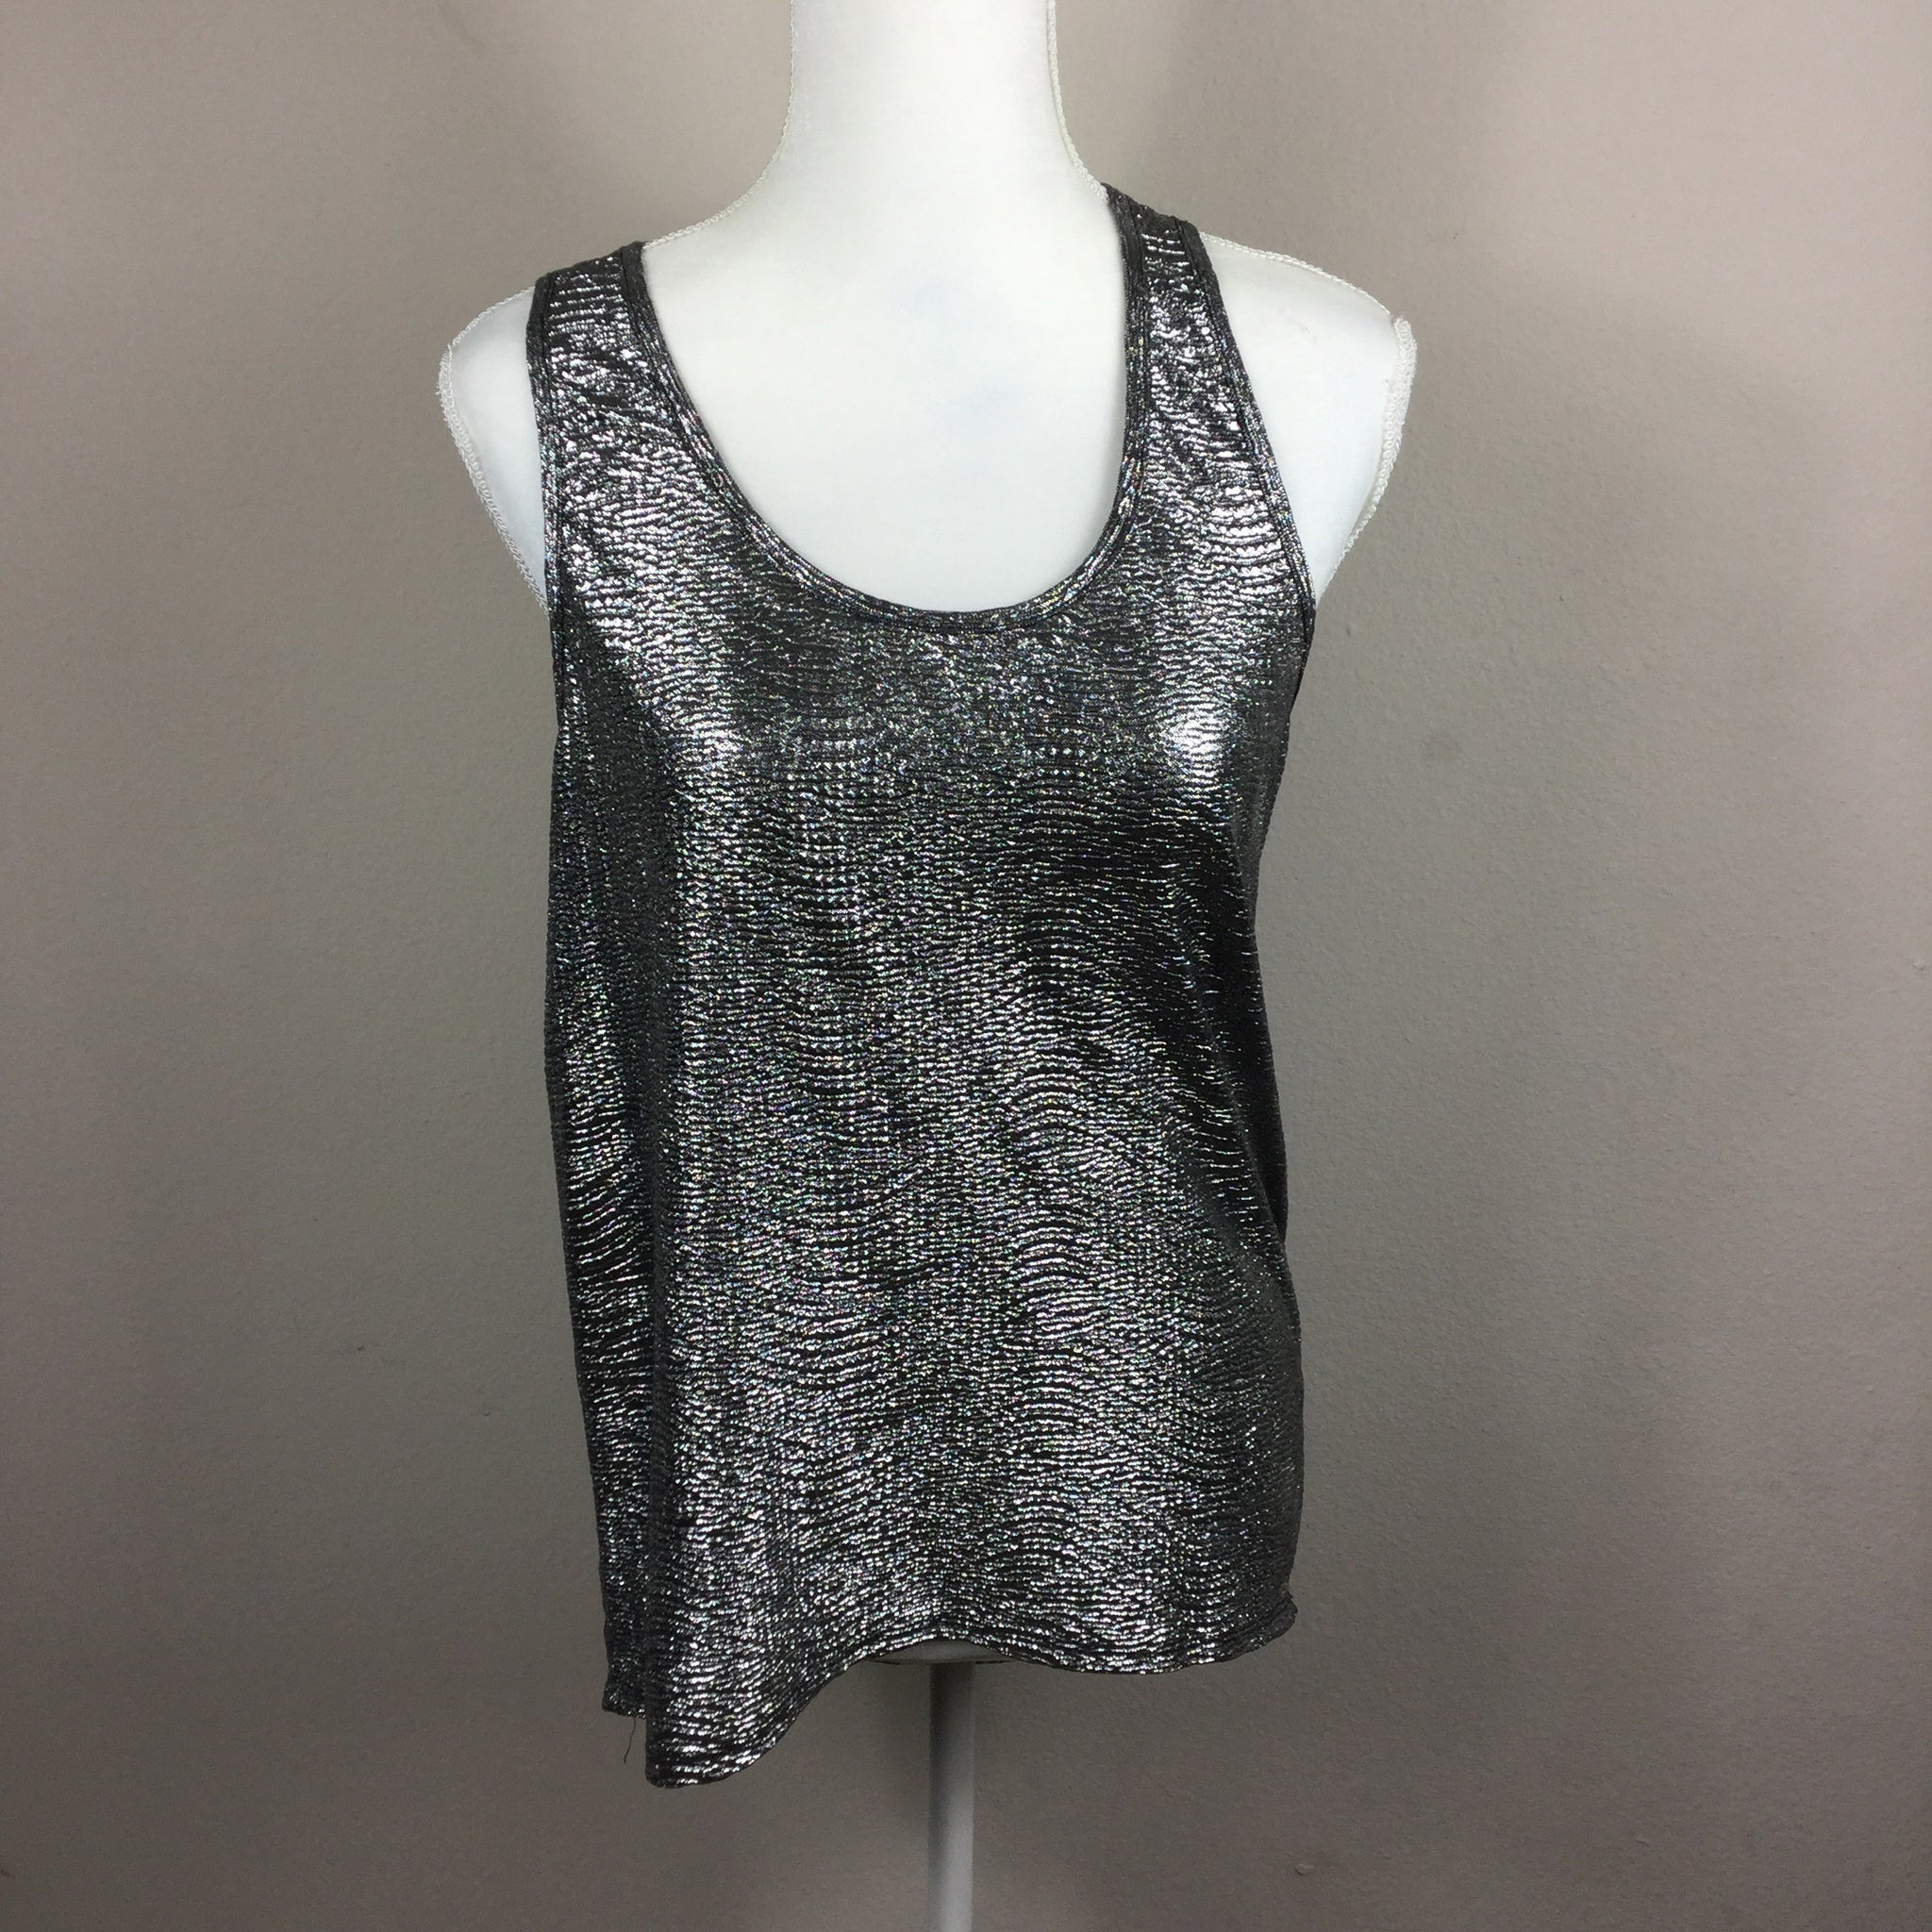 Timing Silver Shimmer Tank Top